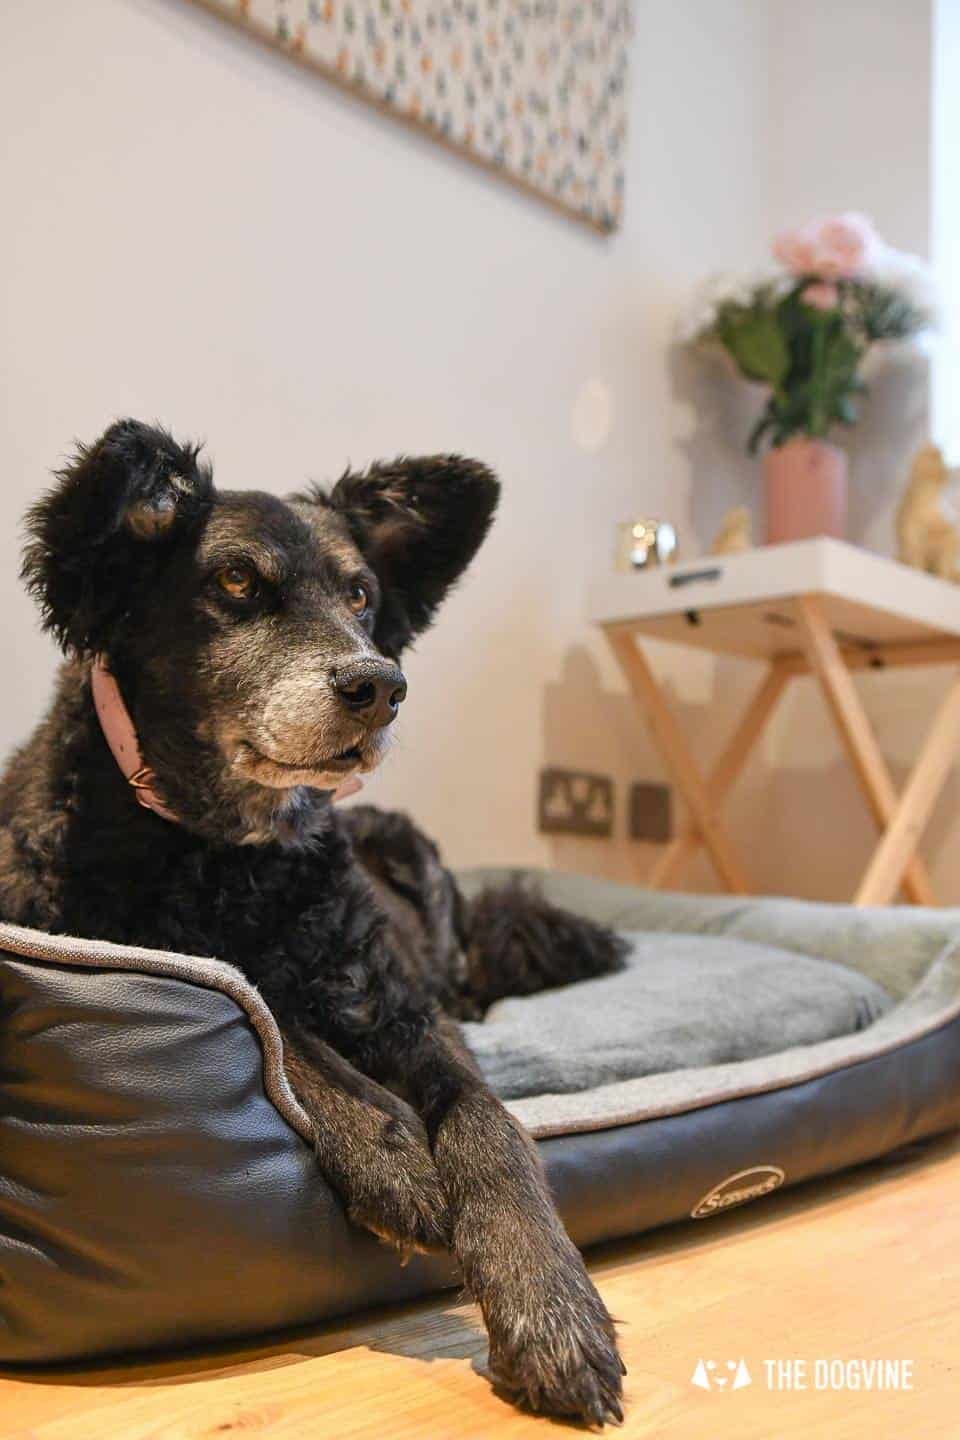 Paws Up For The Scruffs Orthopaedic Dog Bed - Chateau Box Bed Review 4